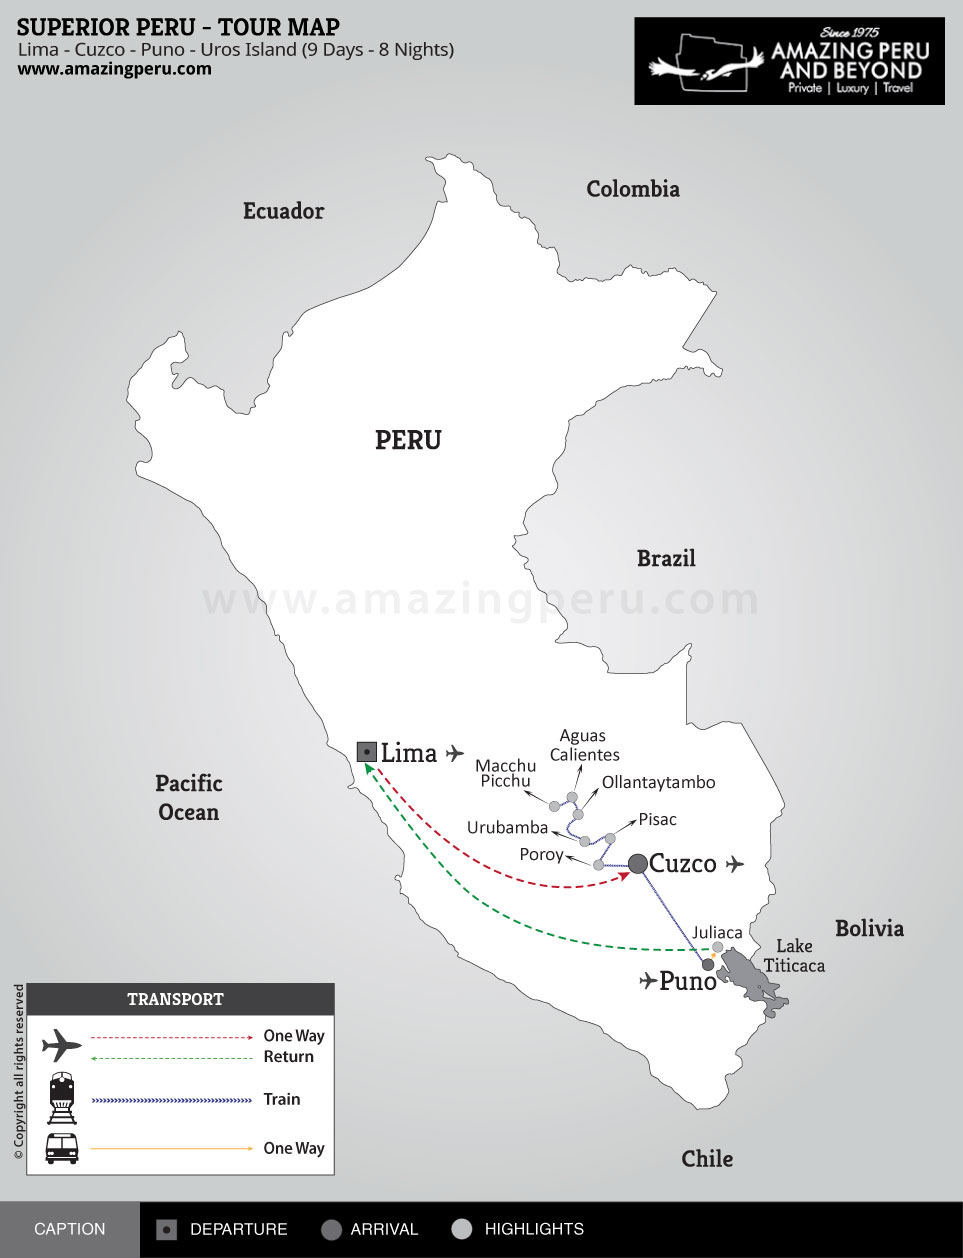 Superior Peru Tour 2 - 9 days / 8 nights.